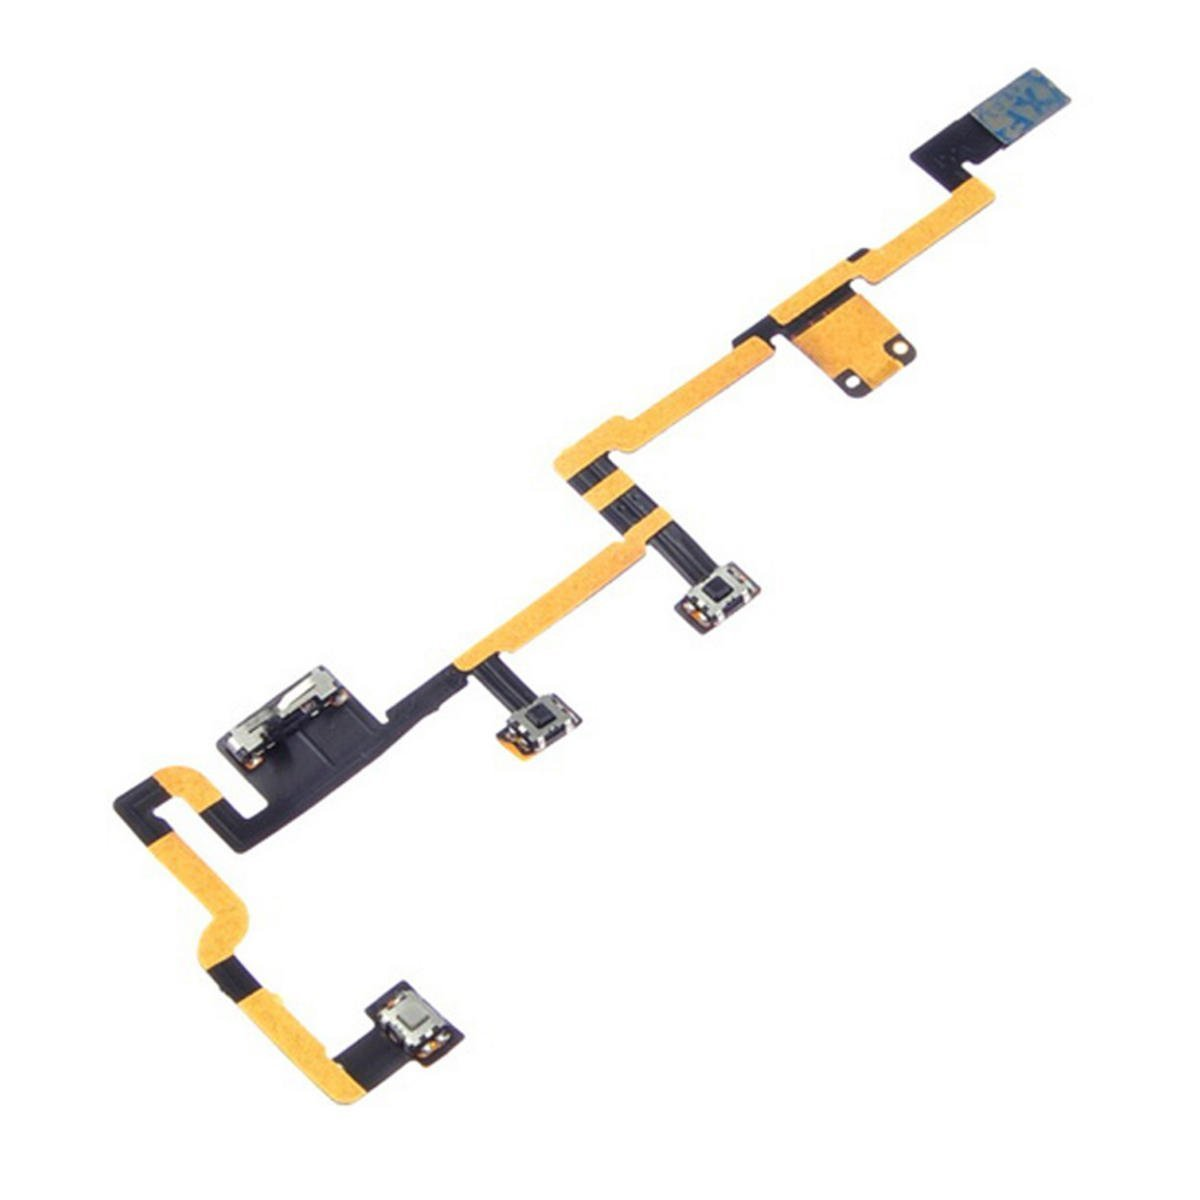 Consumer Electronics Accessories & Parts Flight Tracker Ribbon Flex Cable Power On Off Volume Mute Button Switch Key Replacement Repair Parts For Apple Ipad 5 Air A1474 A1475 Buy One Give One